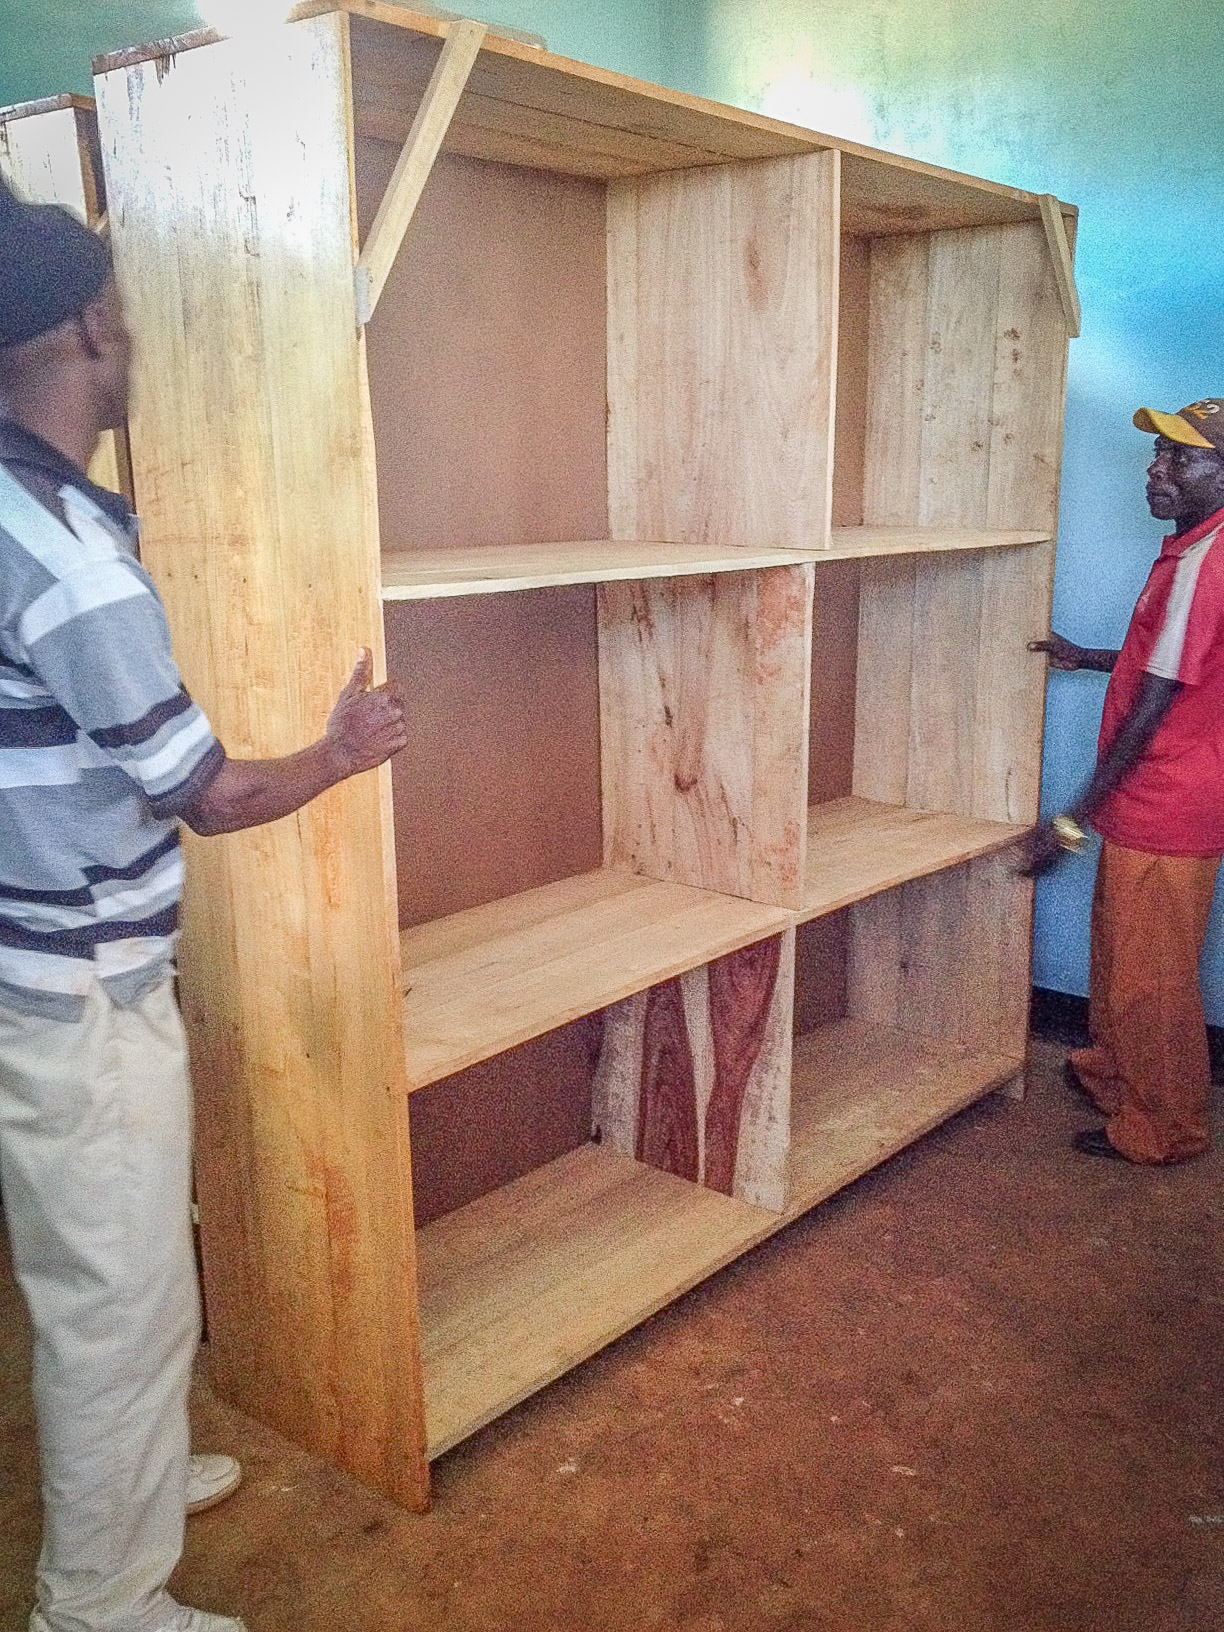 Bringing some shelving into the Multipurpose Building